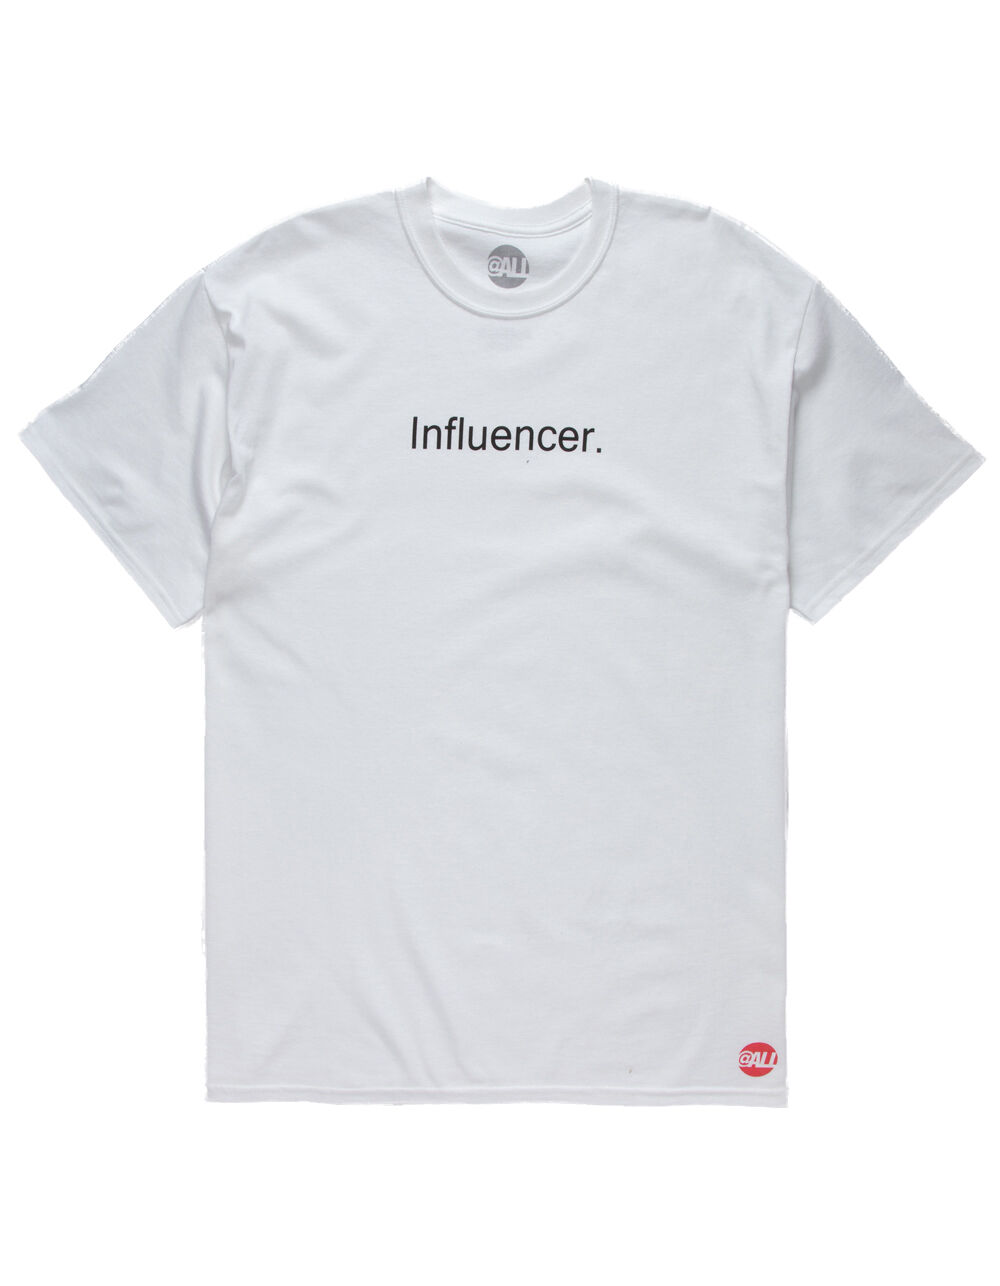 Image of AT ALL INFLUENCER T-SHIRT